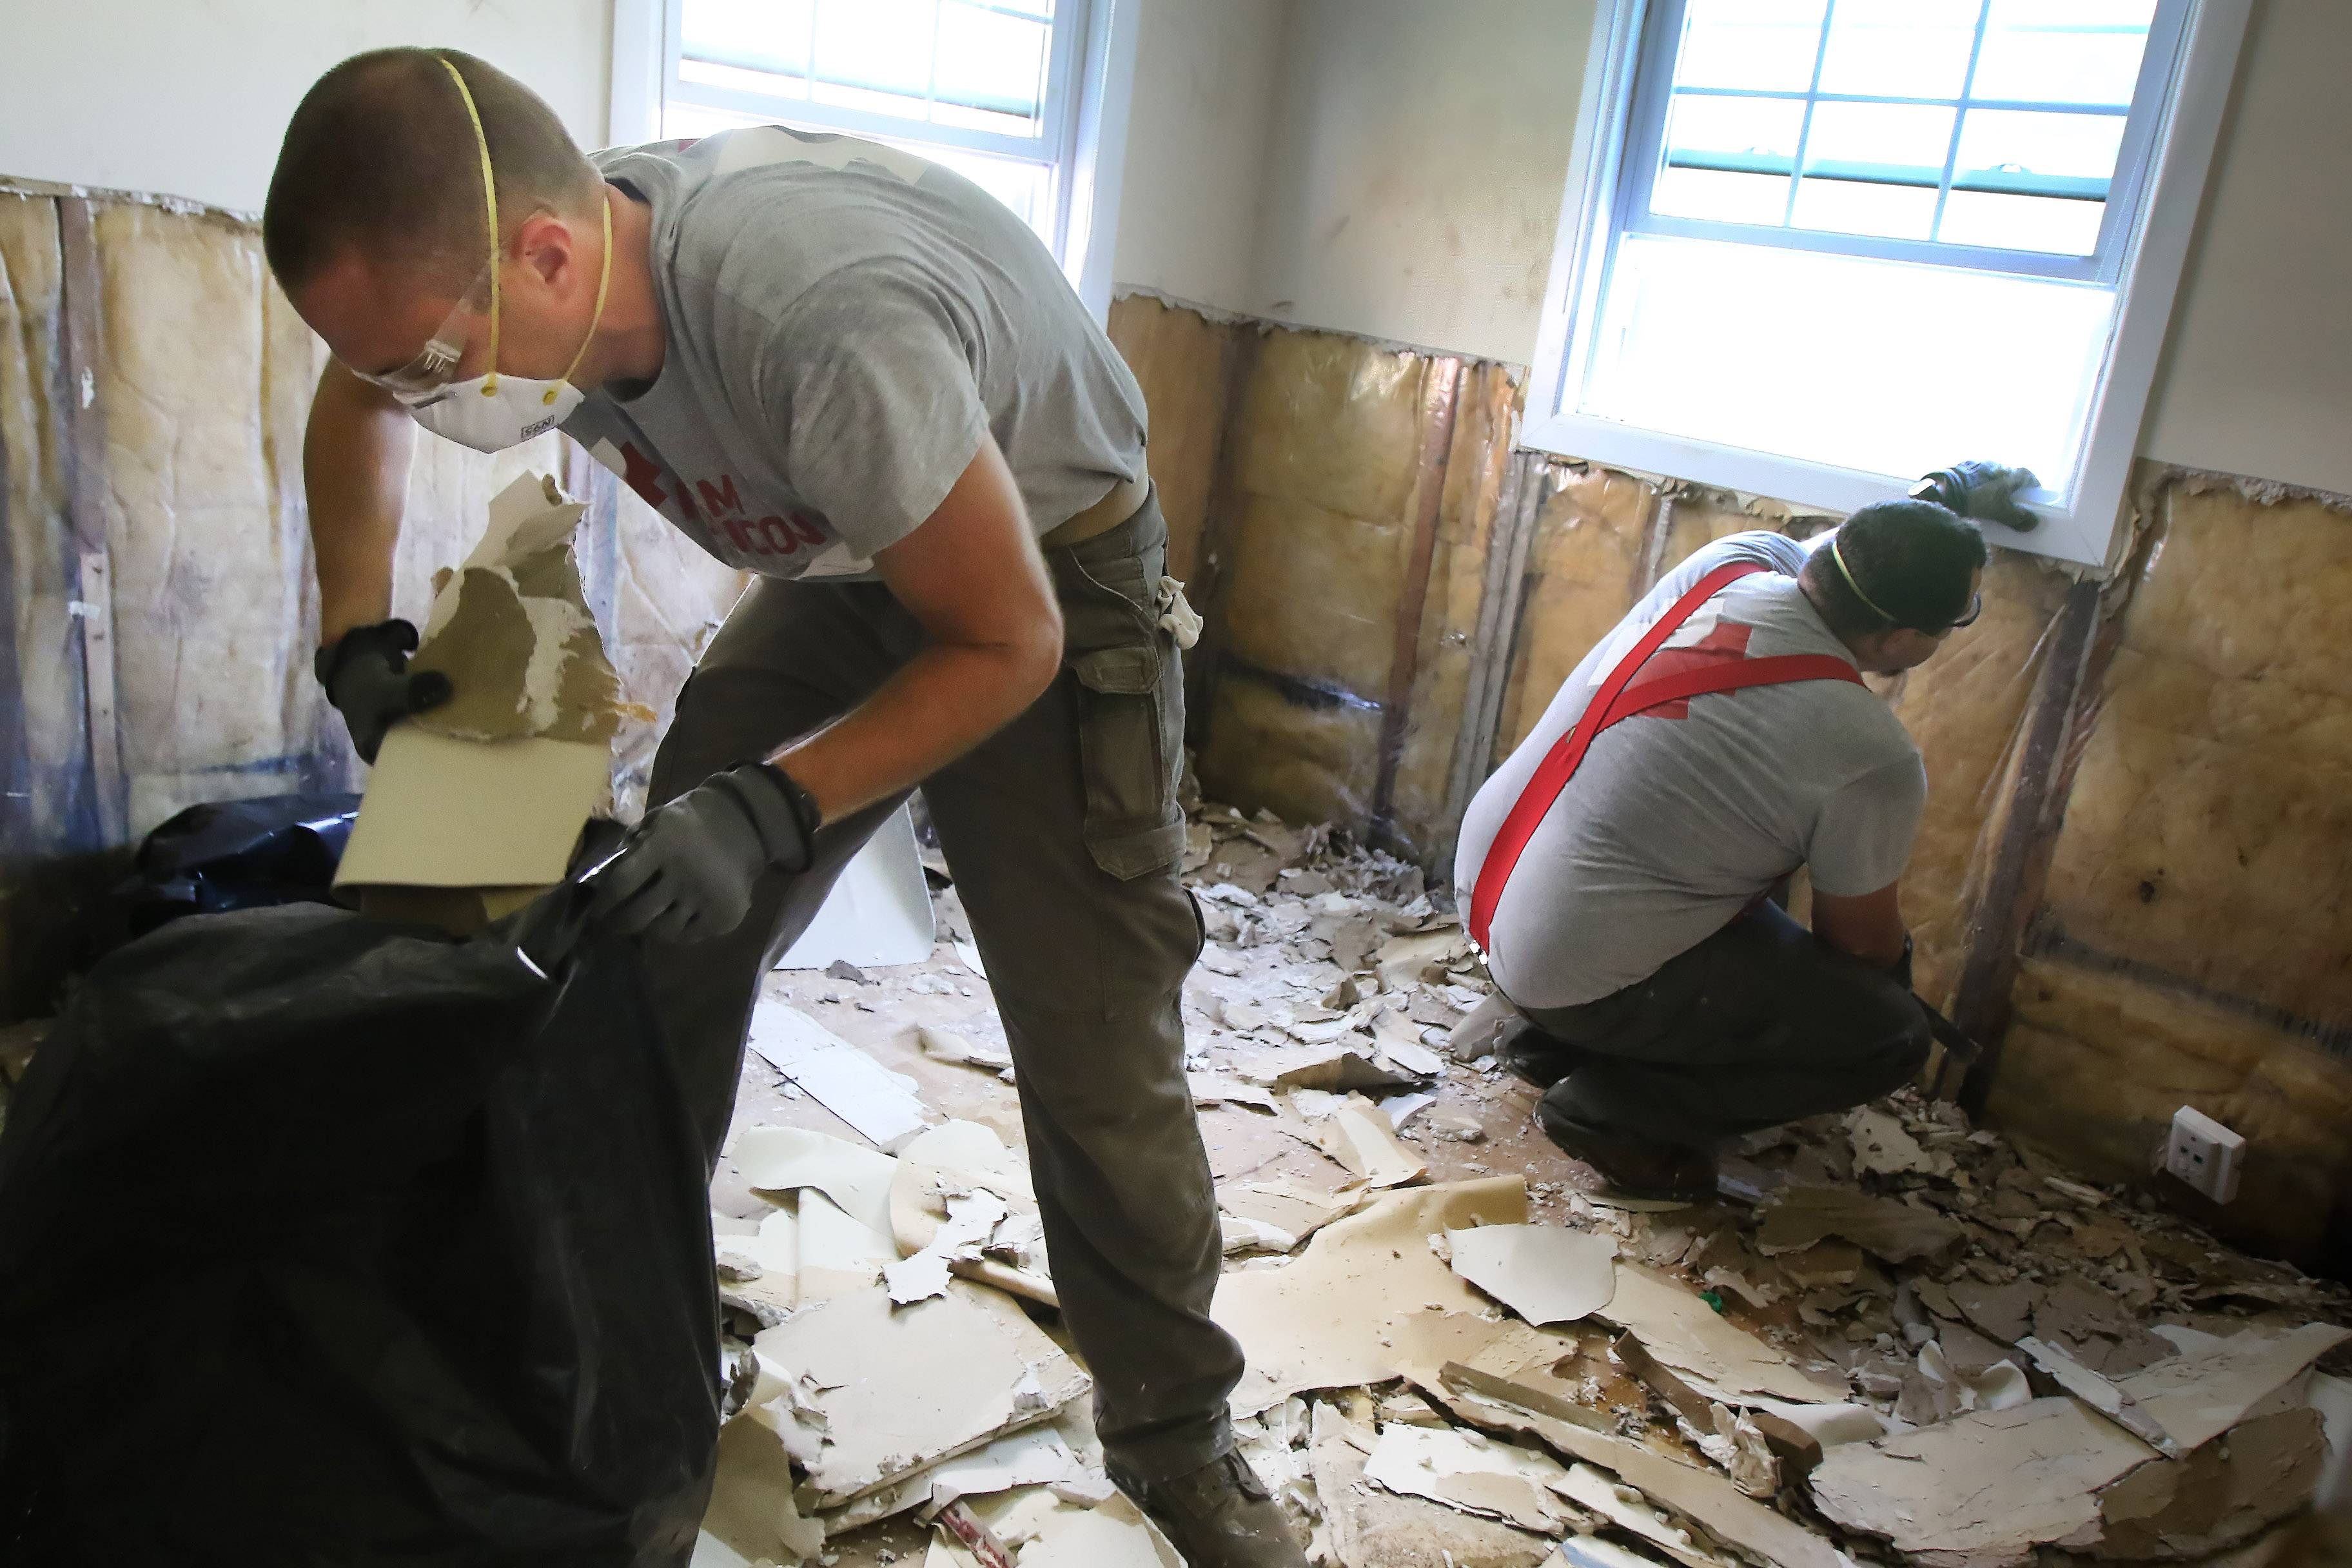 Veterans Adam Martin of Indianapolis, left, and Josh Golson of Portland, Oregon, remove damaged drywall as Team Rubicon repairs a floodeed Round Lake Beach home Tuesday.